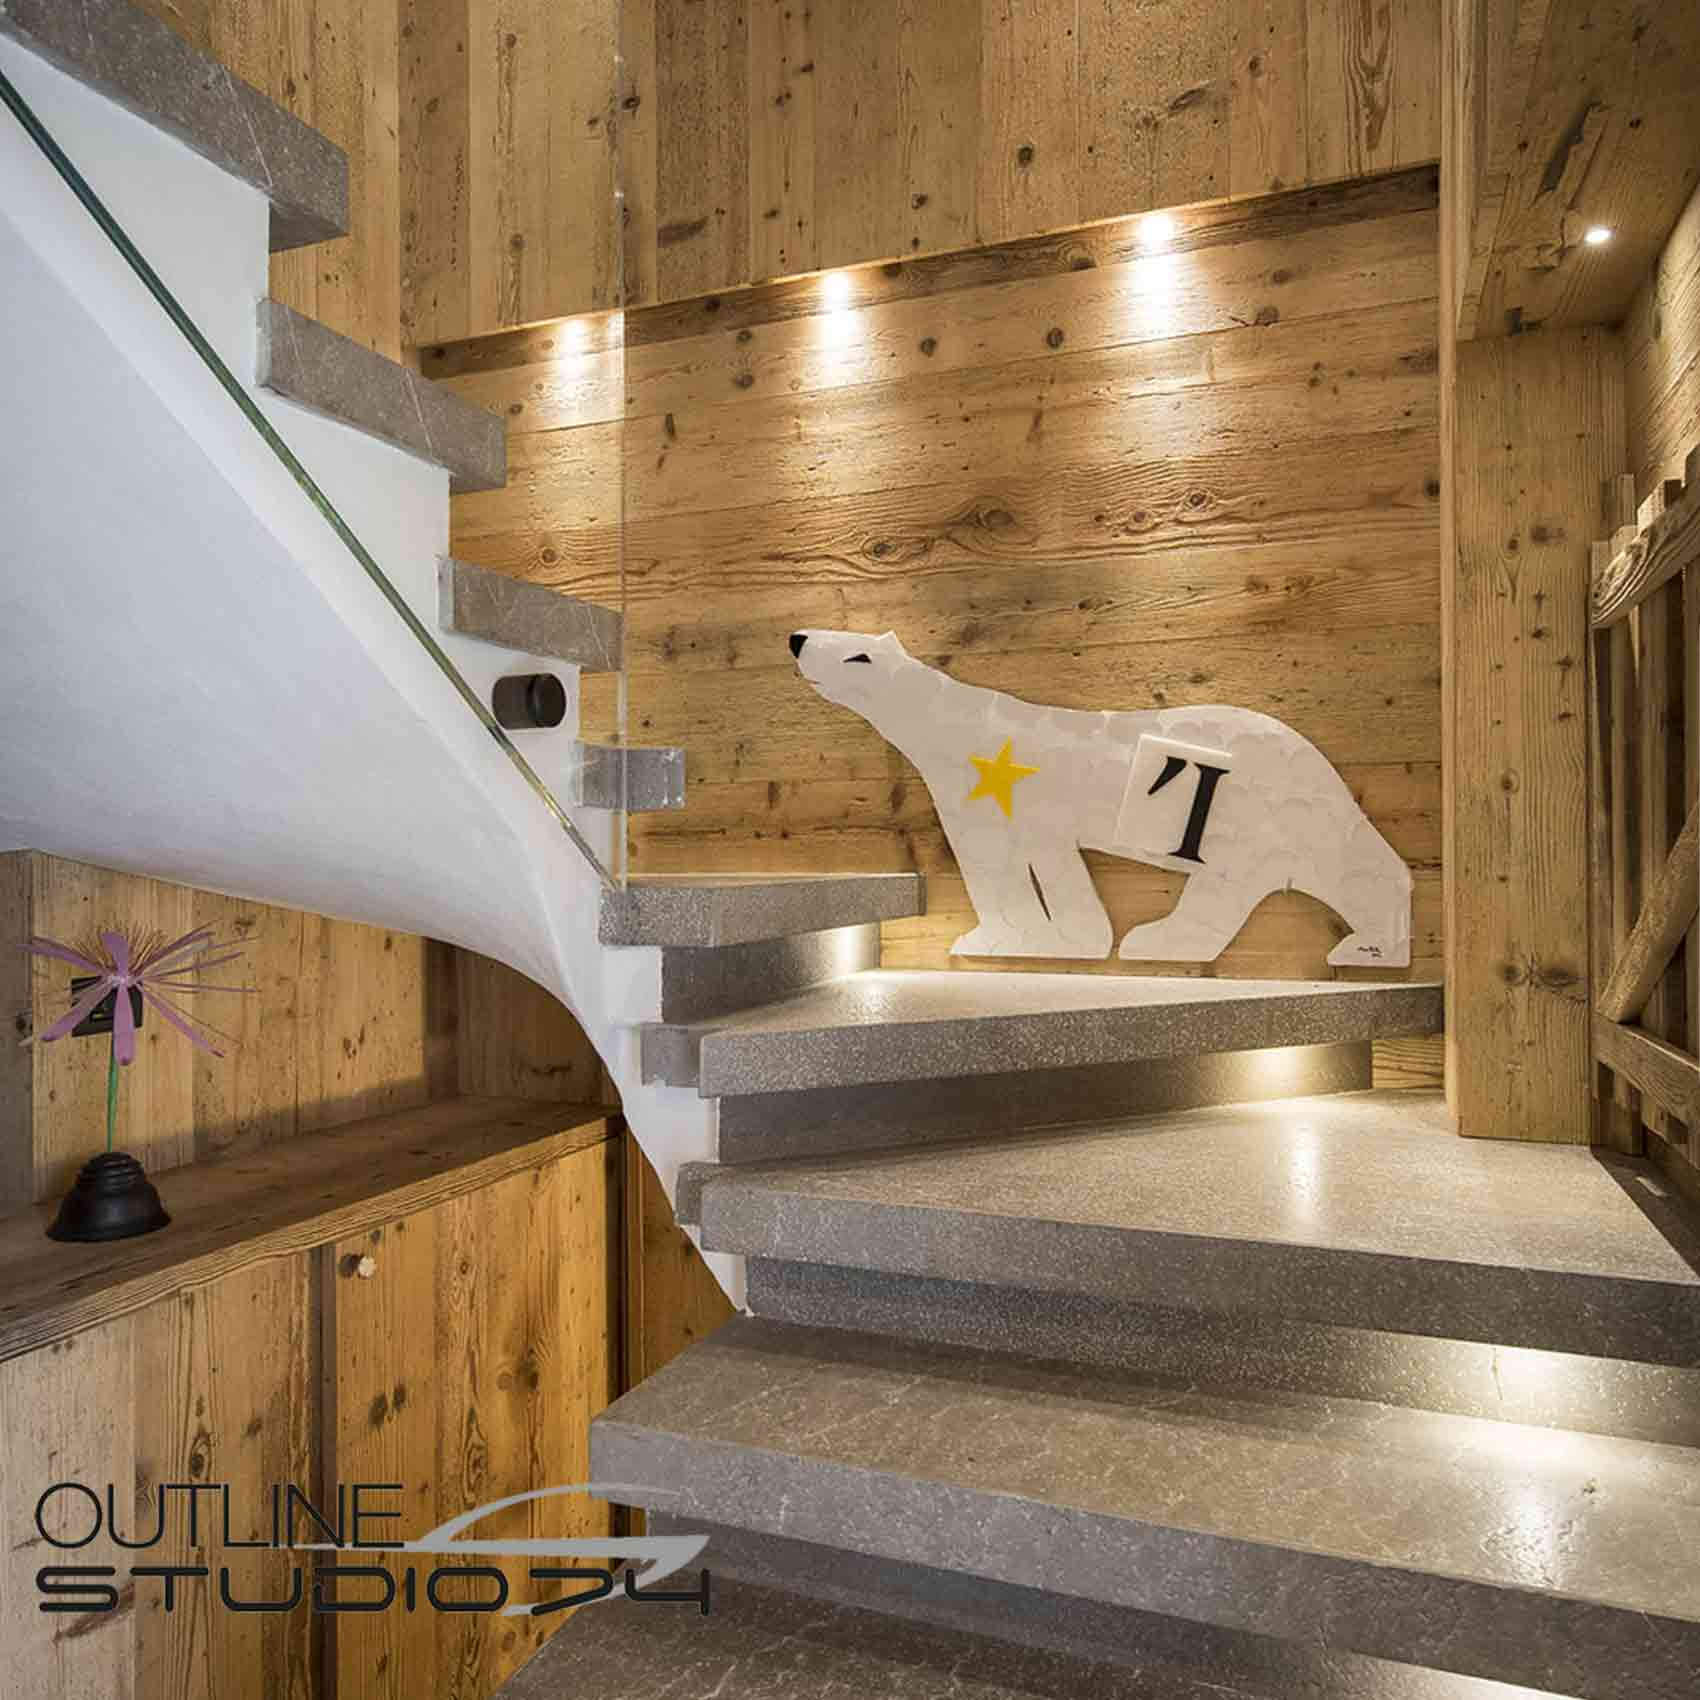 Casa a Cortina - Outline Studio 74